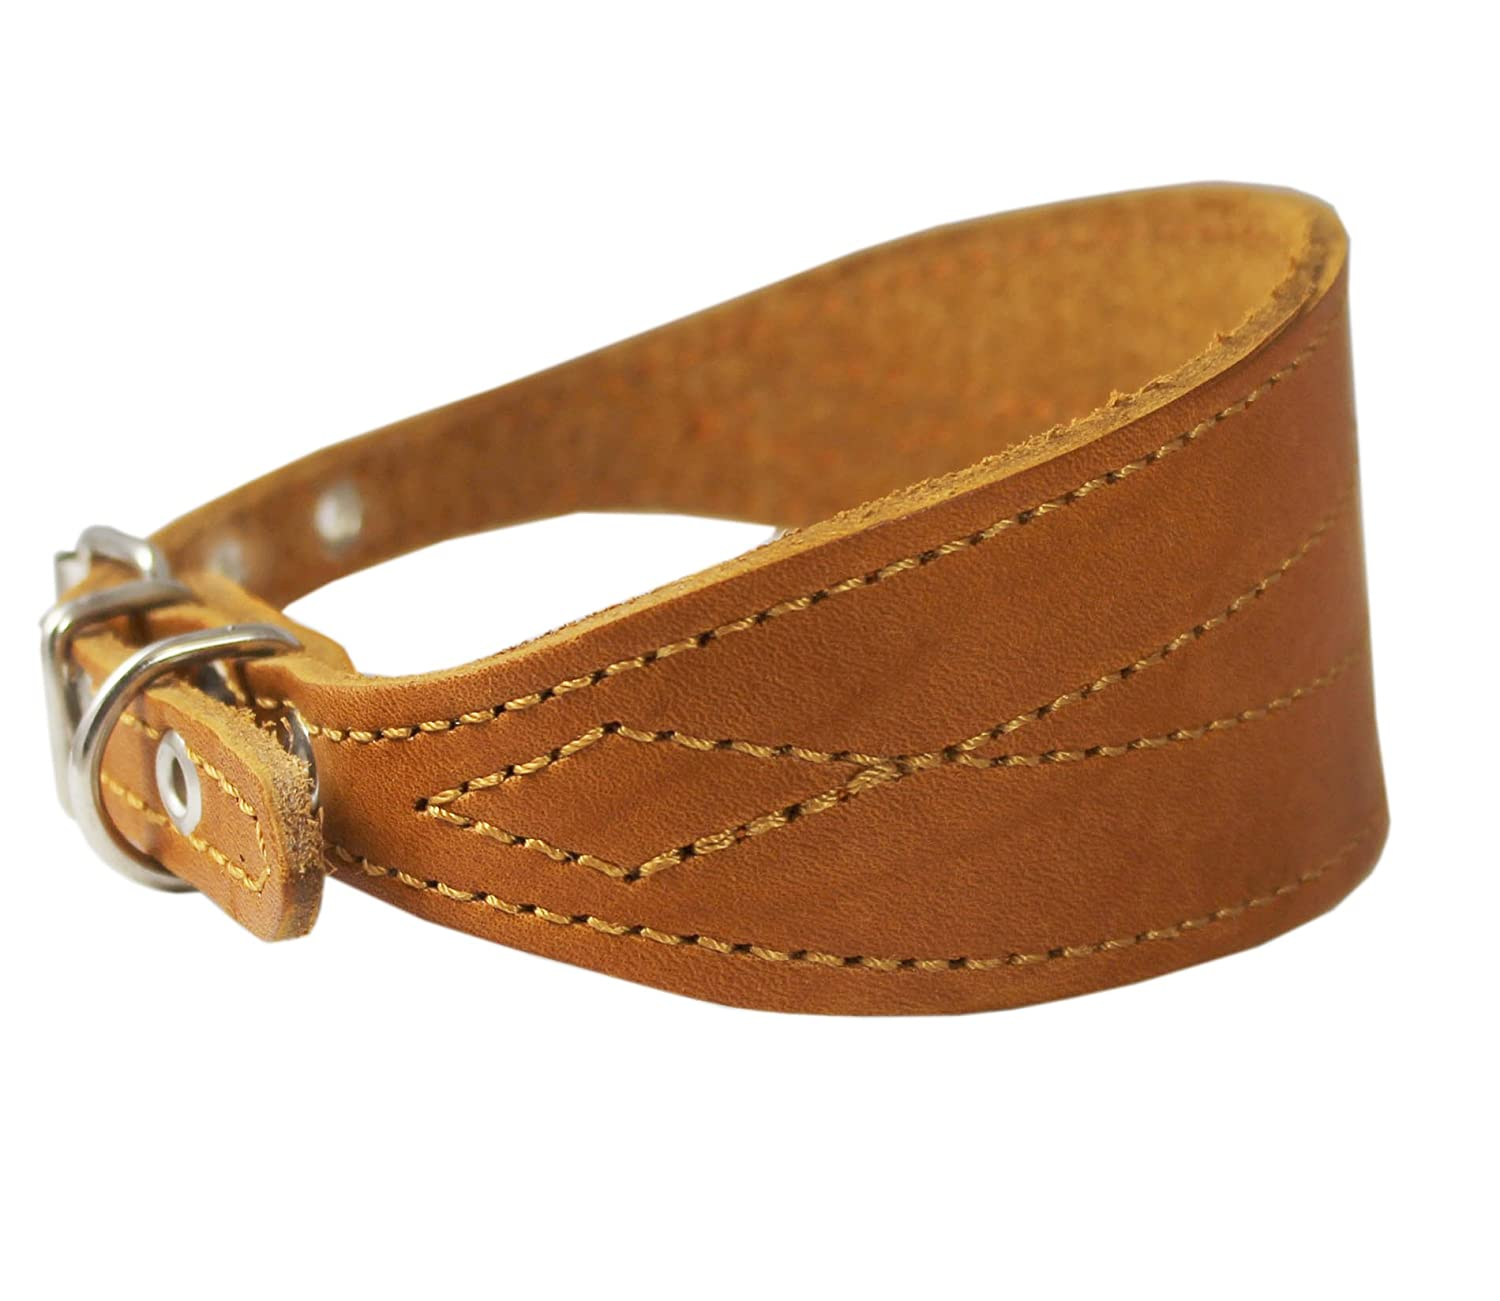 Tan Real Leather Tapered Extra Wide Whippet Dog Collar 2  Wide, Fits 11.5 -15  Neck, Medium